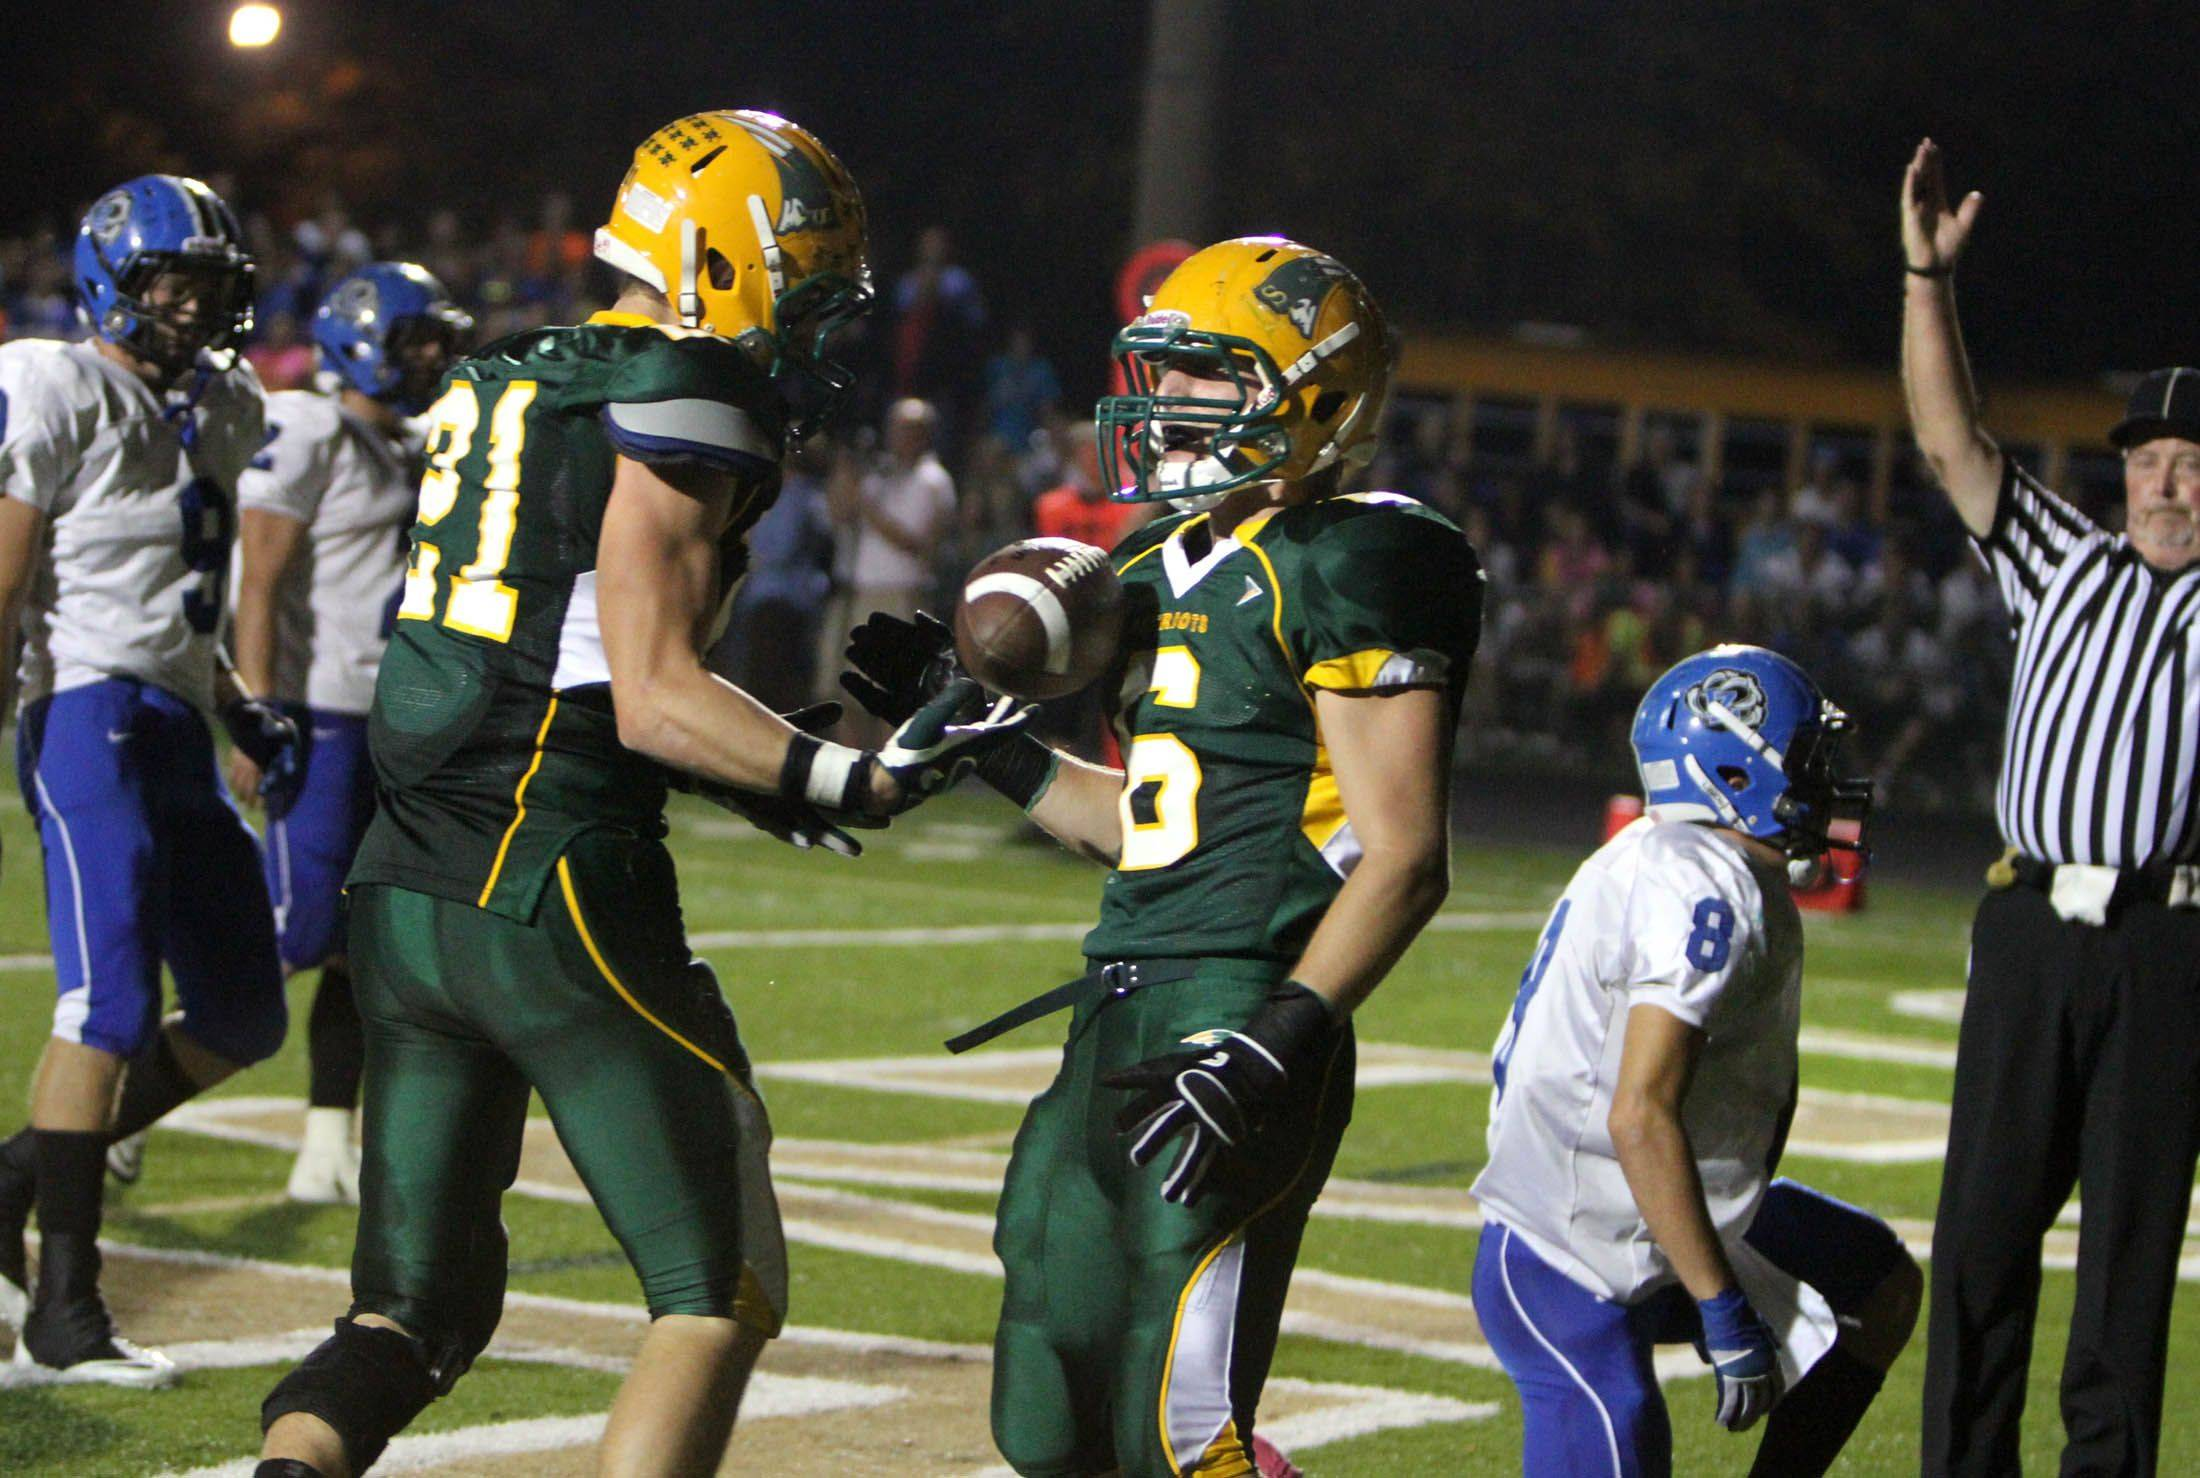 Stevenson's Jon Way, left, celebrates a touchdown catch with Nick Constantini against Lake Zurich making the score 13-0 in the first half at Stevenson on Thursday, October 6th.